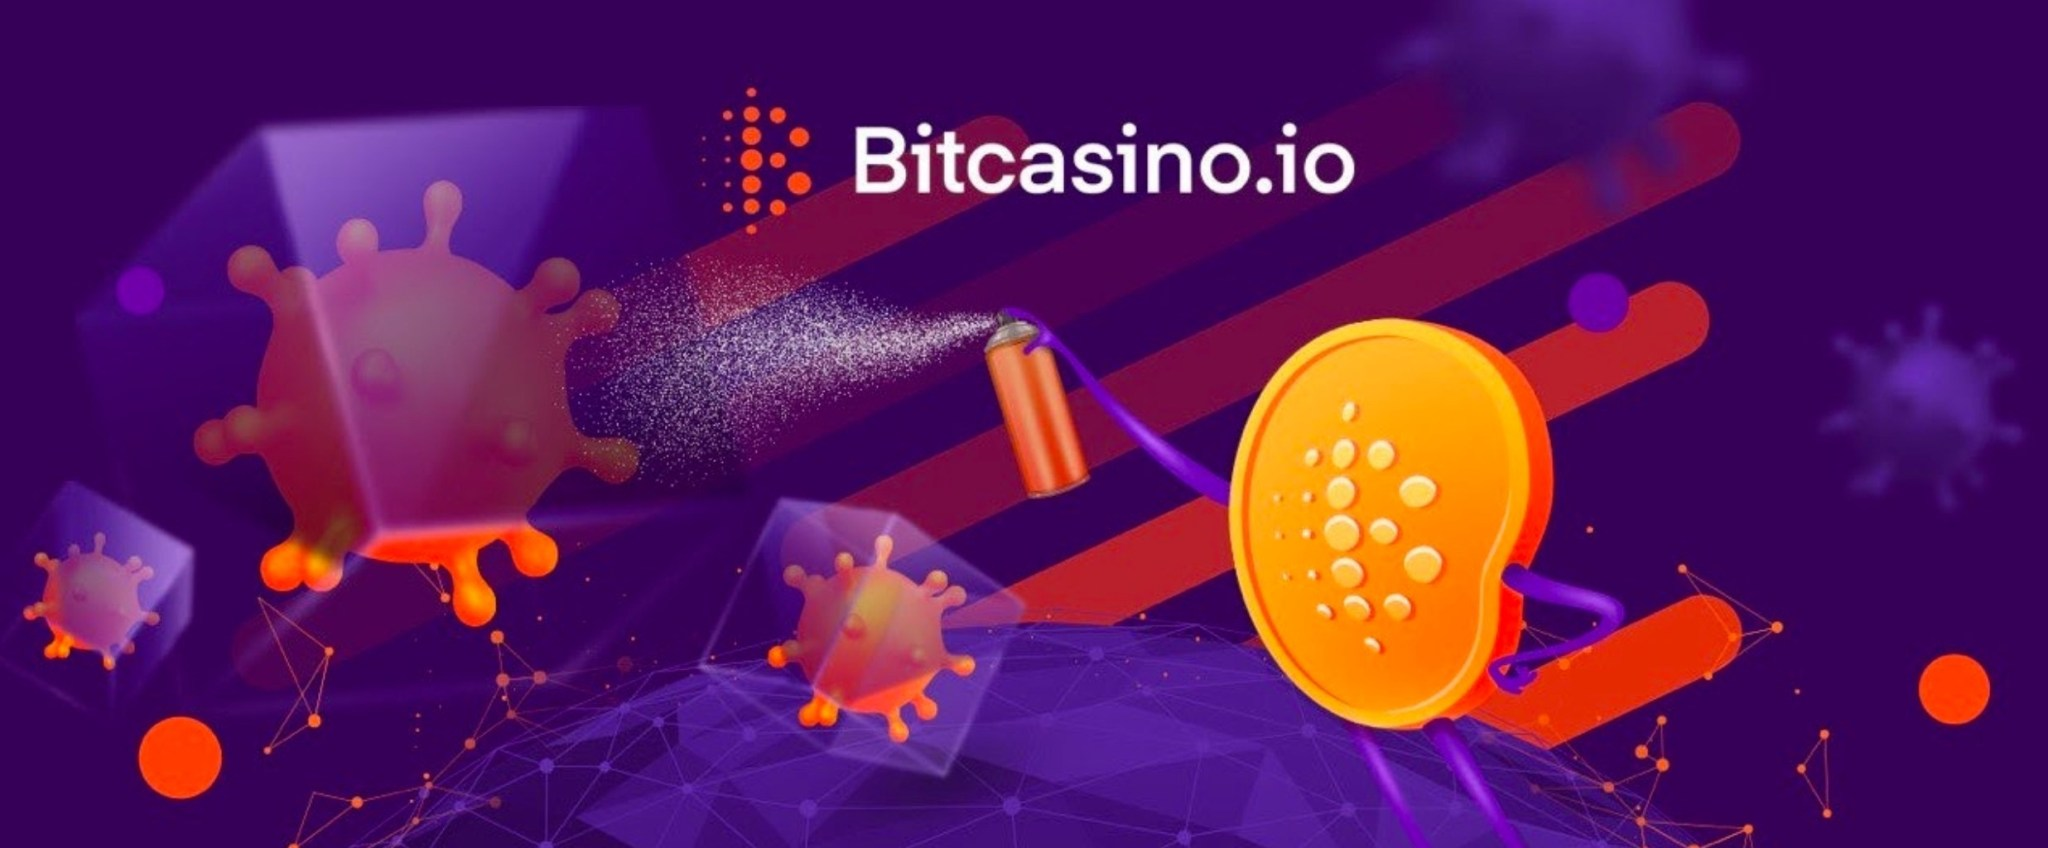 Bitcasino Raises 20 BTC in its Crypto Vs COVID-19 Donations Campaign